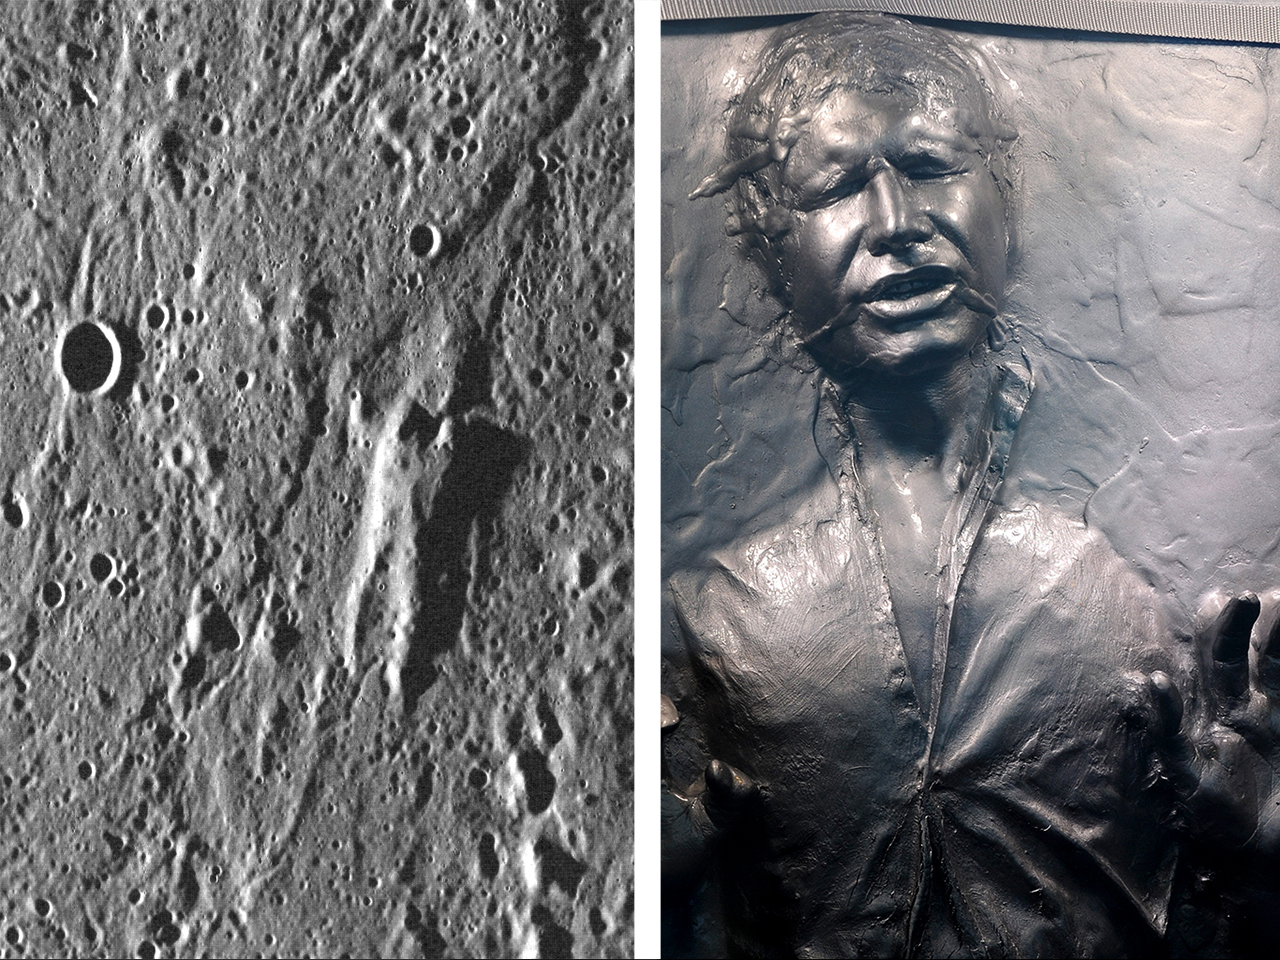 Left: The surface of Mars, right: The Star Wars prop of actor Harrison Ford's Han Solo character frozen in carbonite is displayed at the museum exhibi...